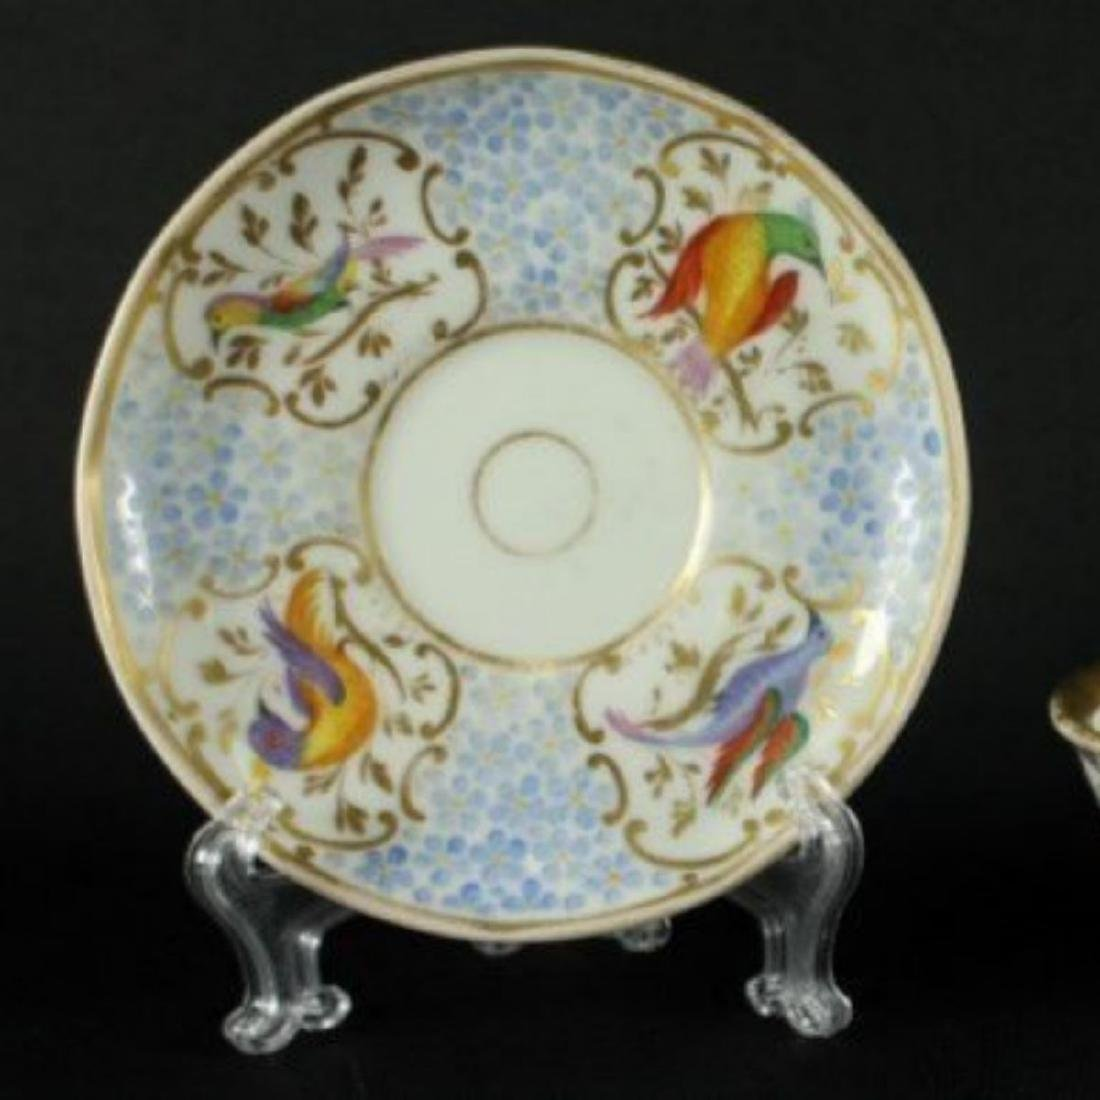 BEAUTIFUL ANTIQUE BERLIN GERMAN CUP AND SAUCER